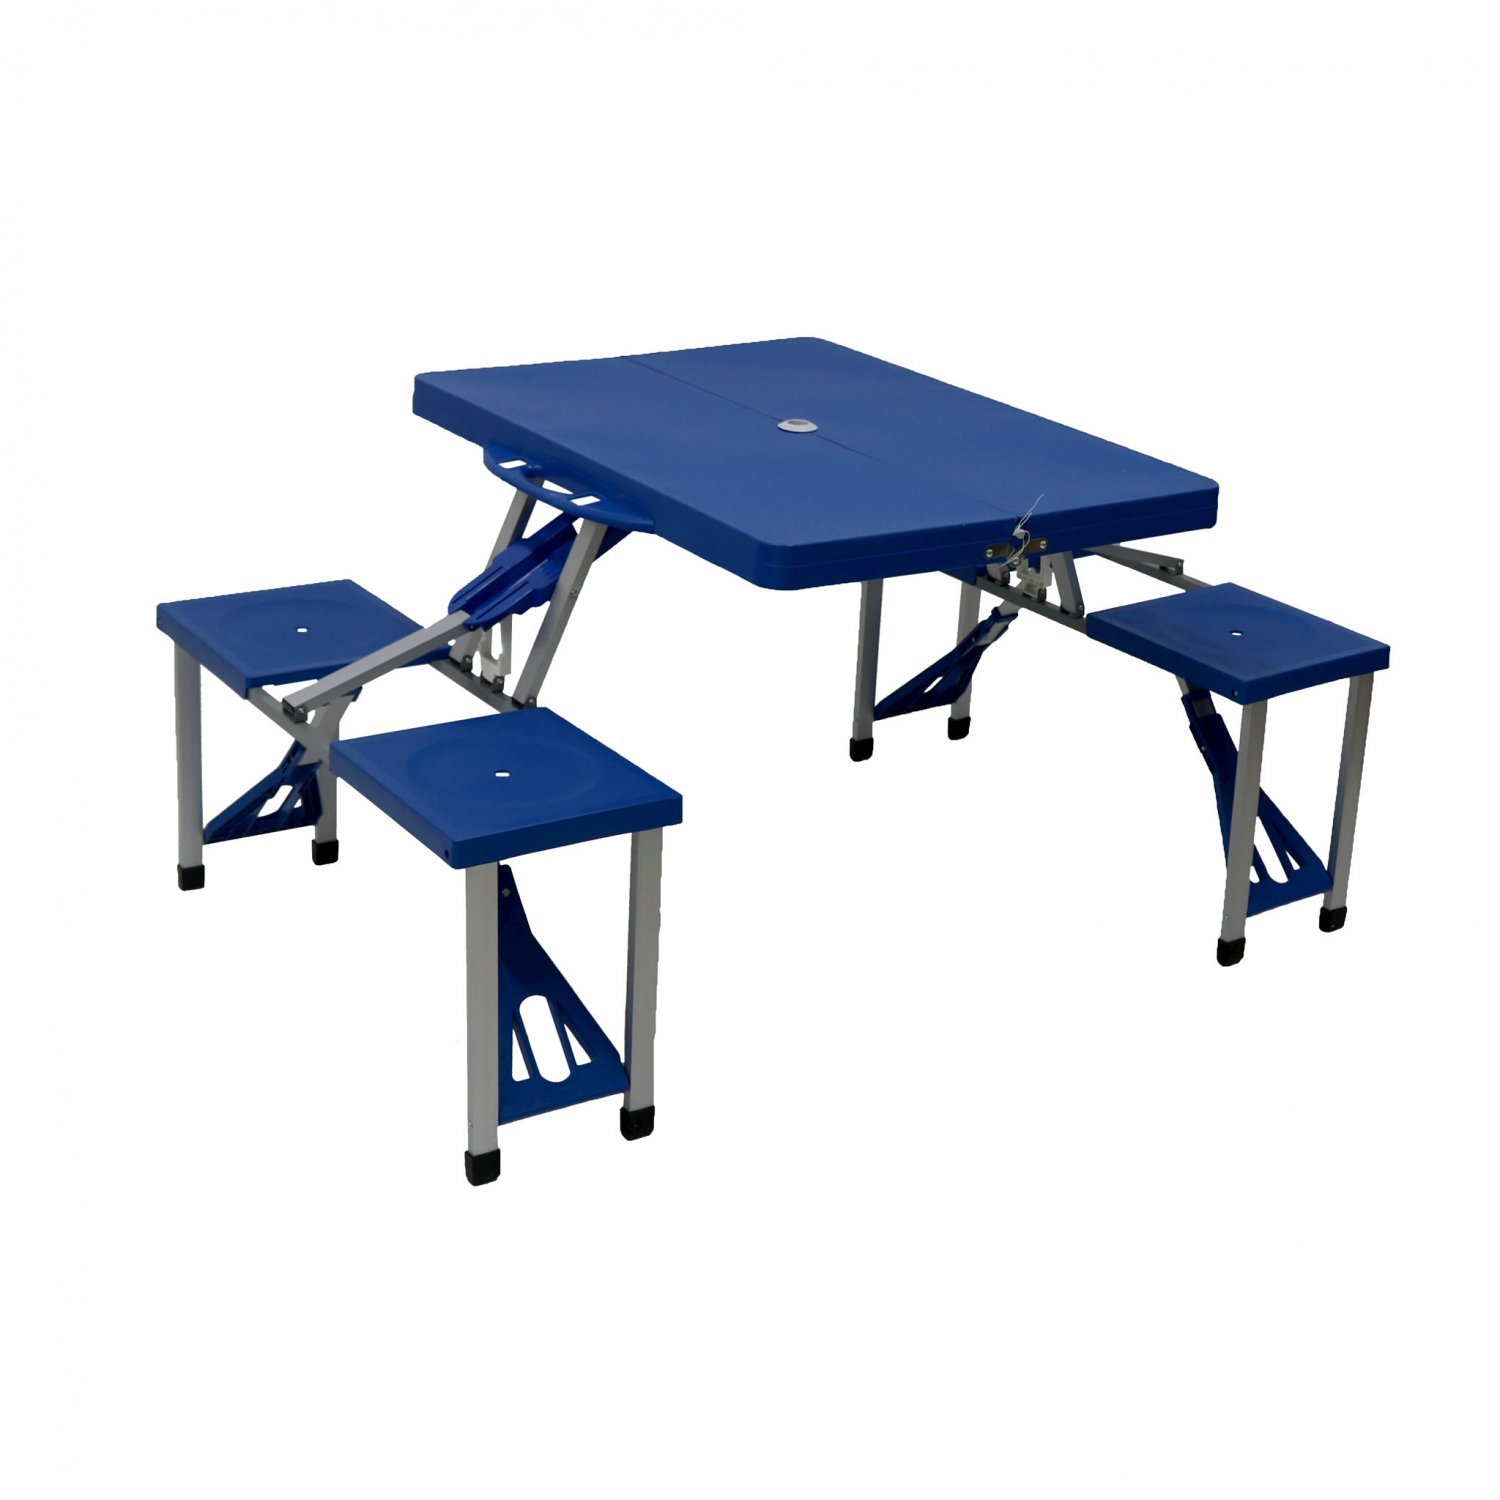 Portable folding outdoor picnic table and bench set 4 for Table and bench set